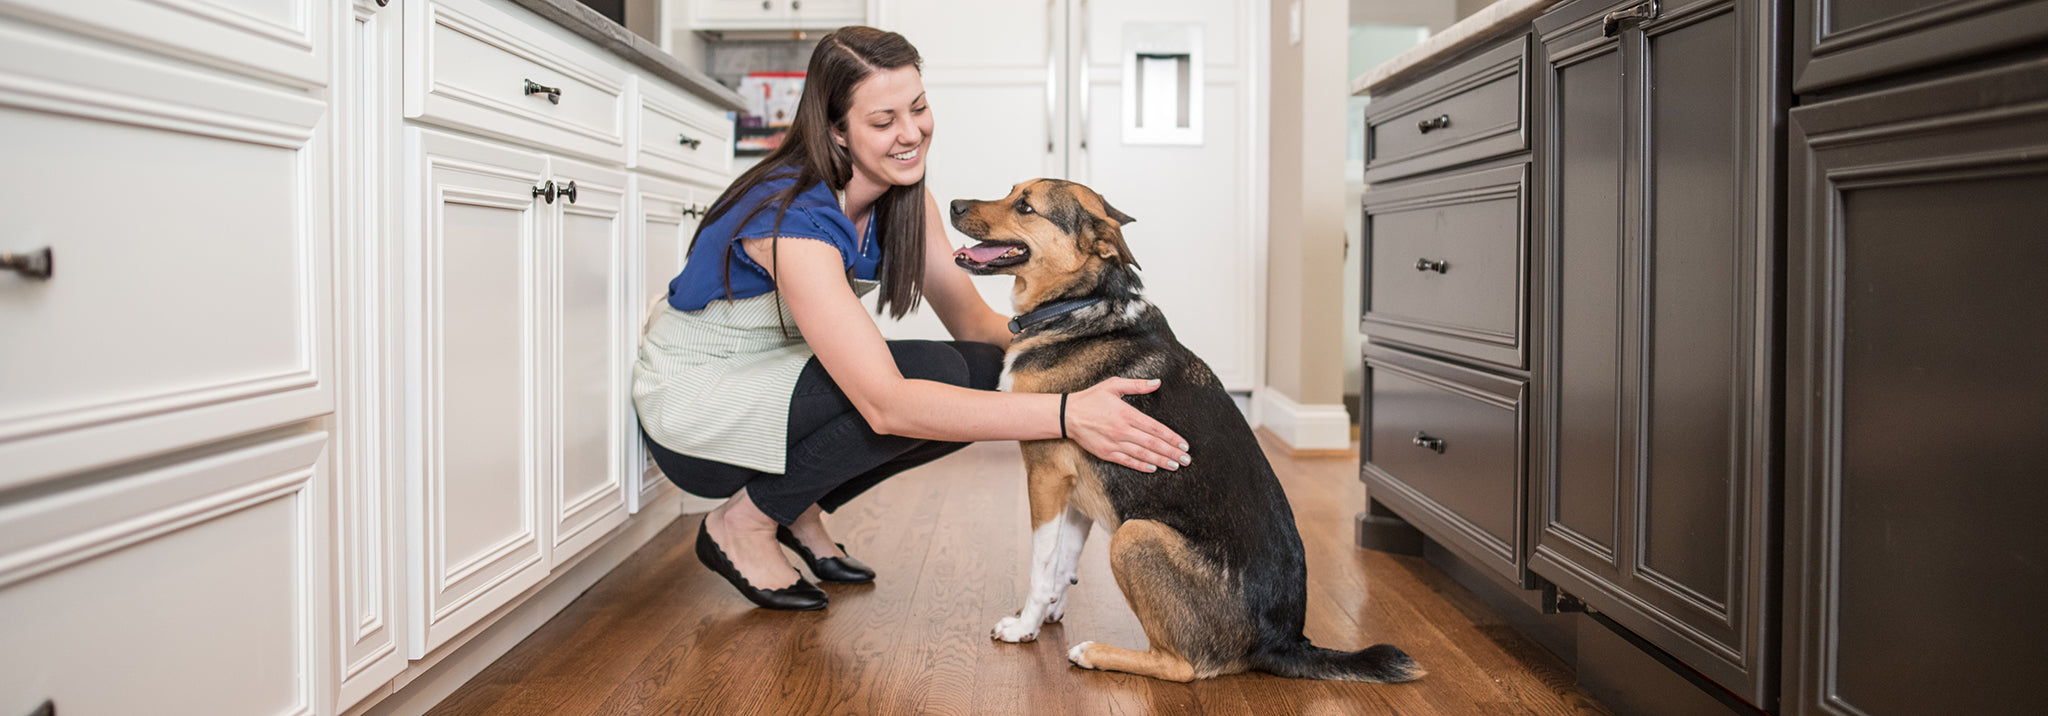 Woman wearing an apron petting her dog in the kitchen.